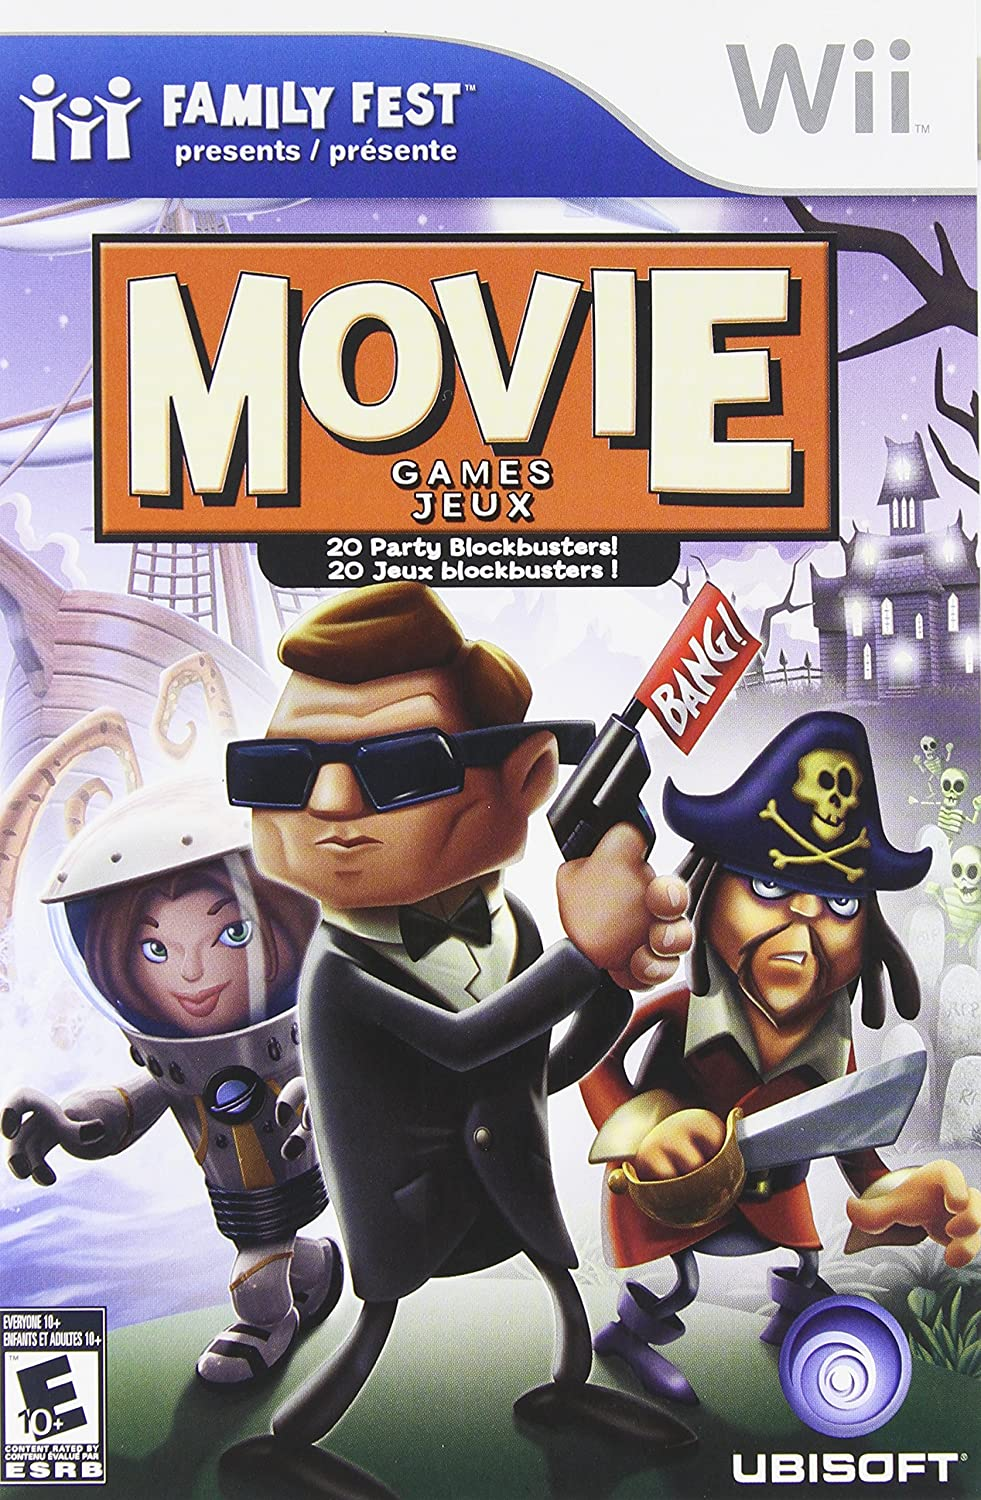 Wii - Family Fest Movie Games